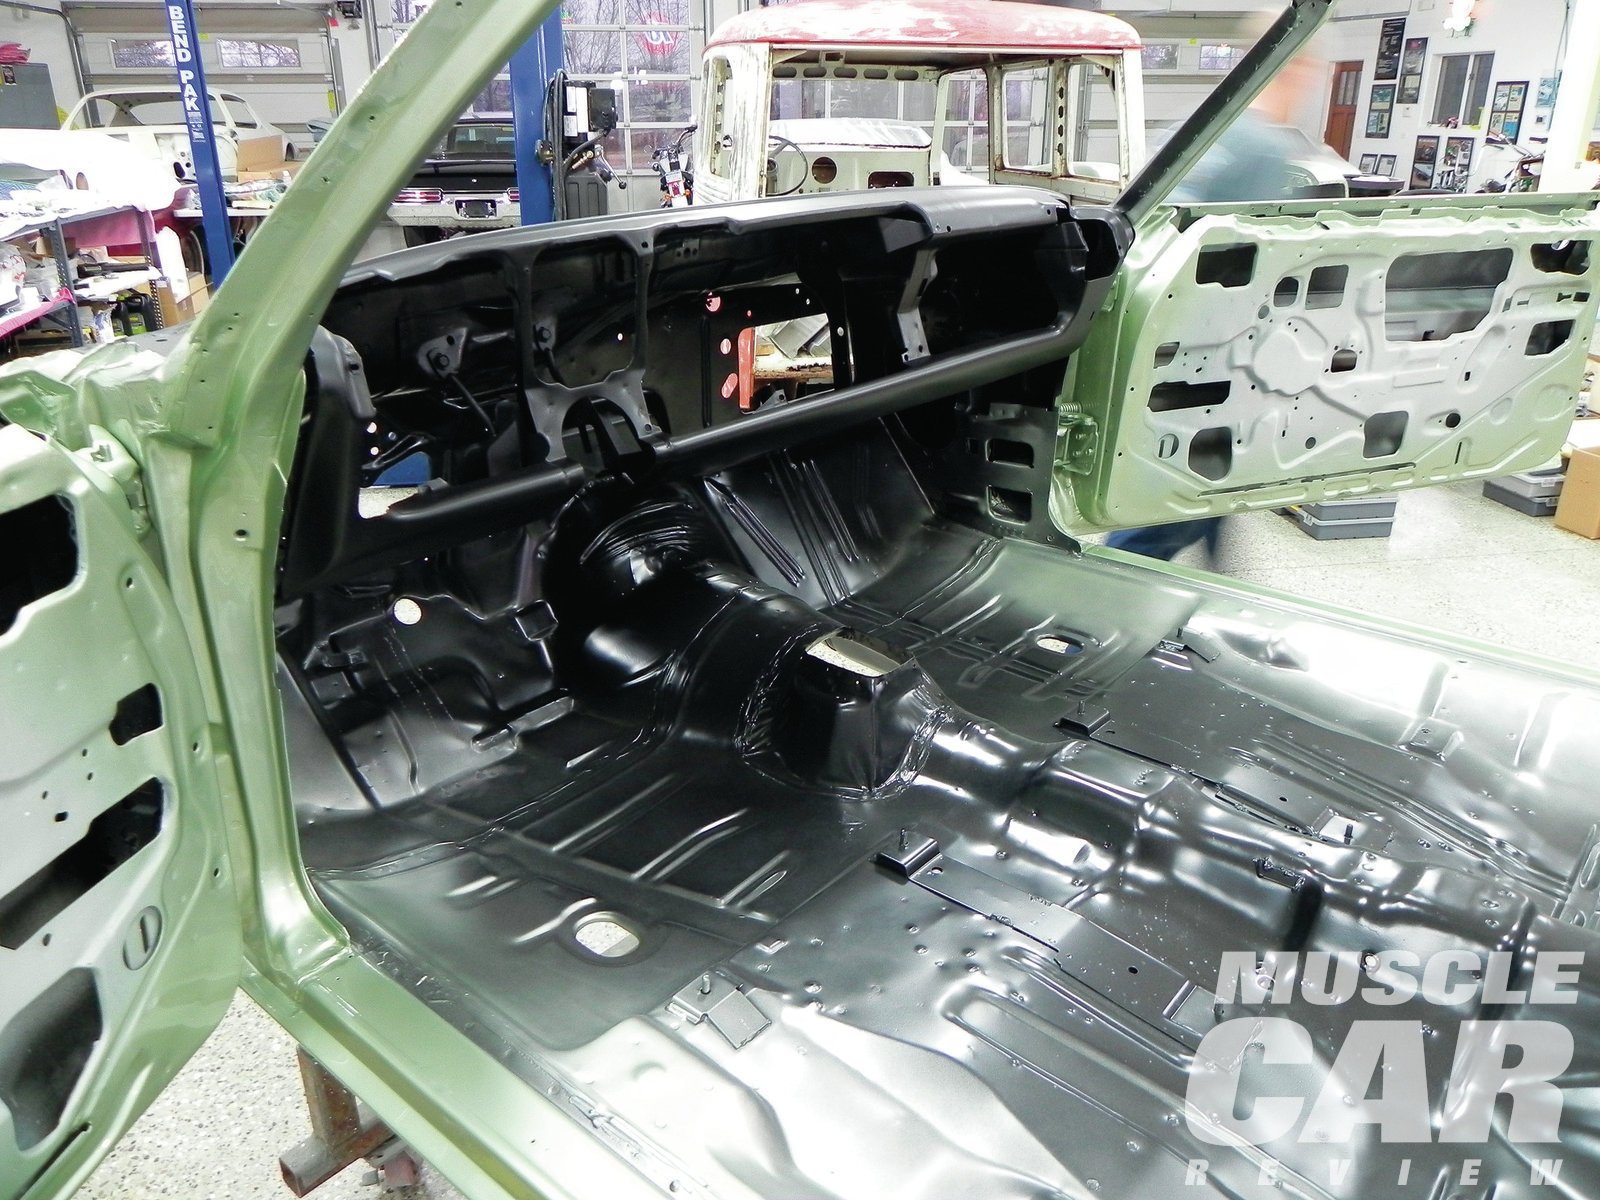 The body's interior is painted black, and the overspray is  applied over the black. The dash is painted a flatter black, which is applied after the body paint and overspray. It is the last color applied.